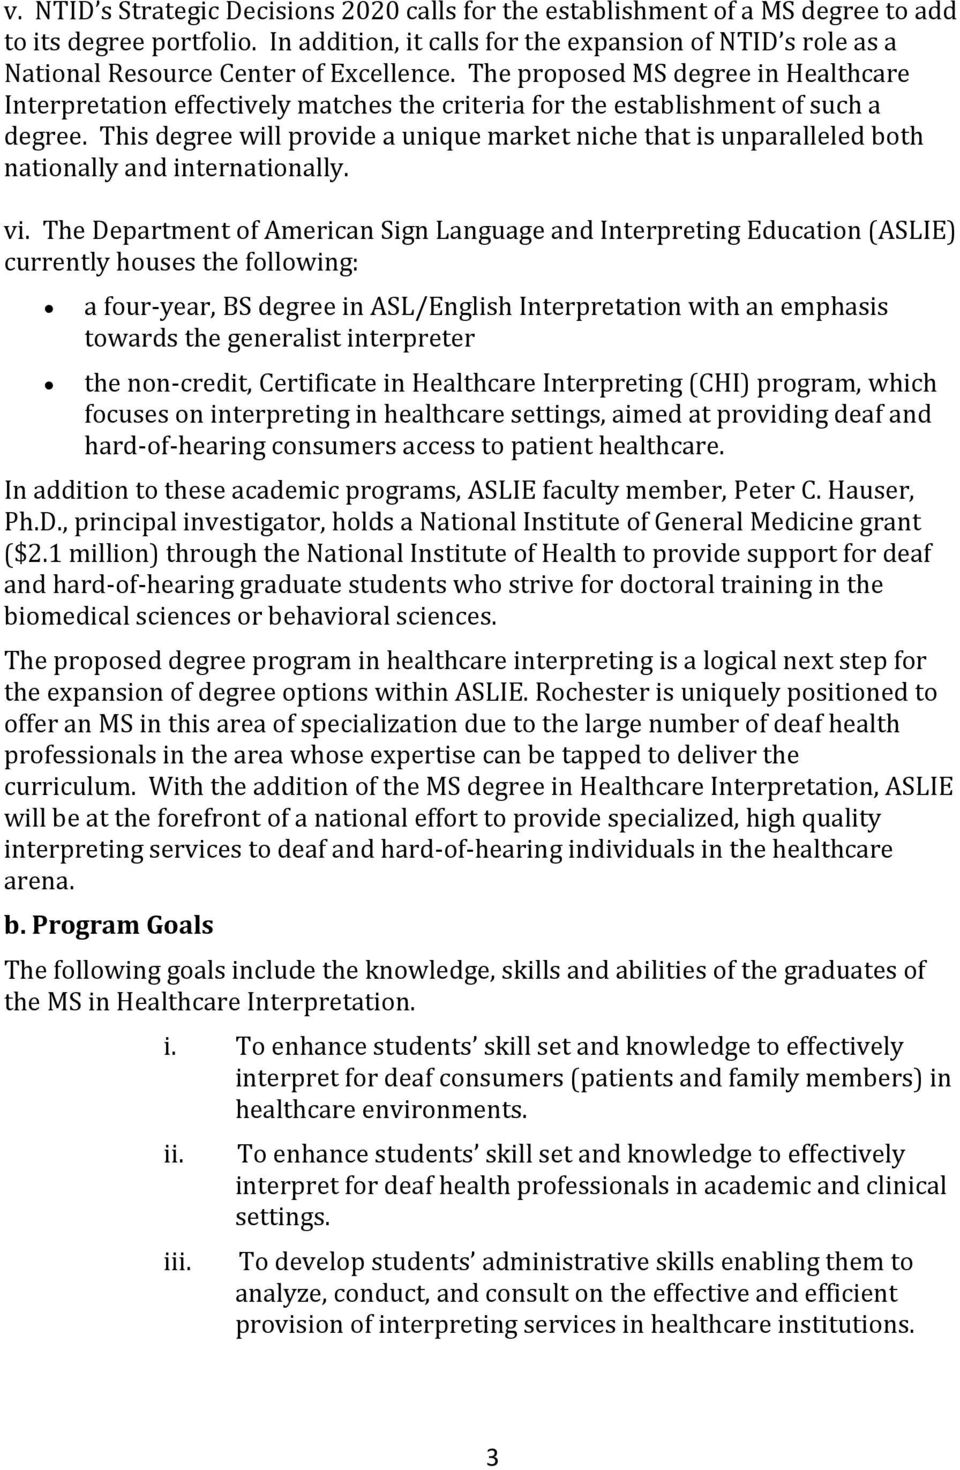 The proposed MS degree in Healthcare Interpretation effectively matches the criteria for the establishment of such a degree.